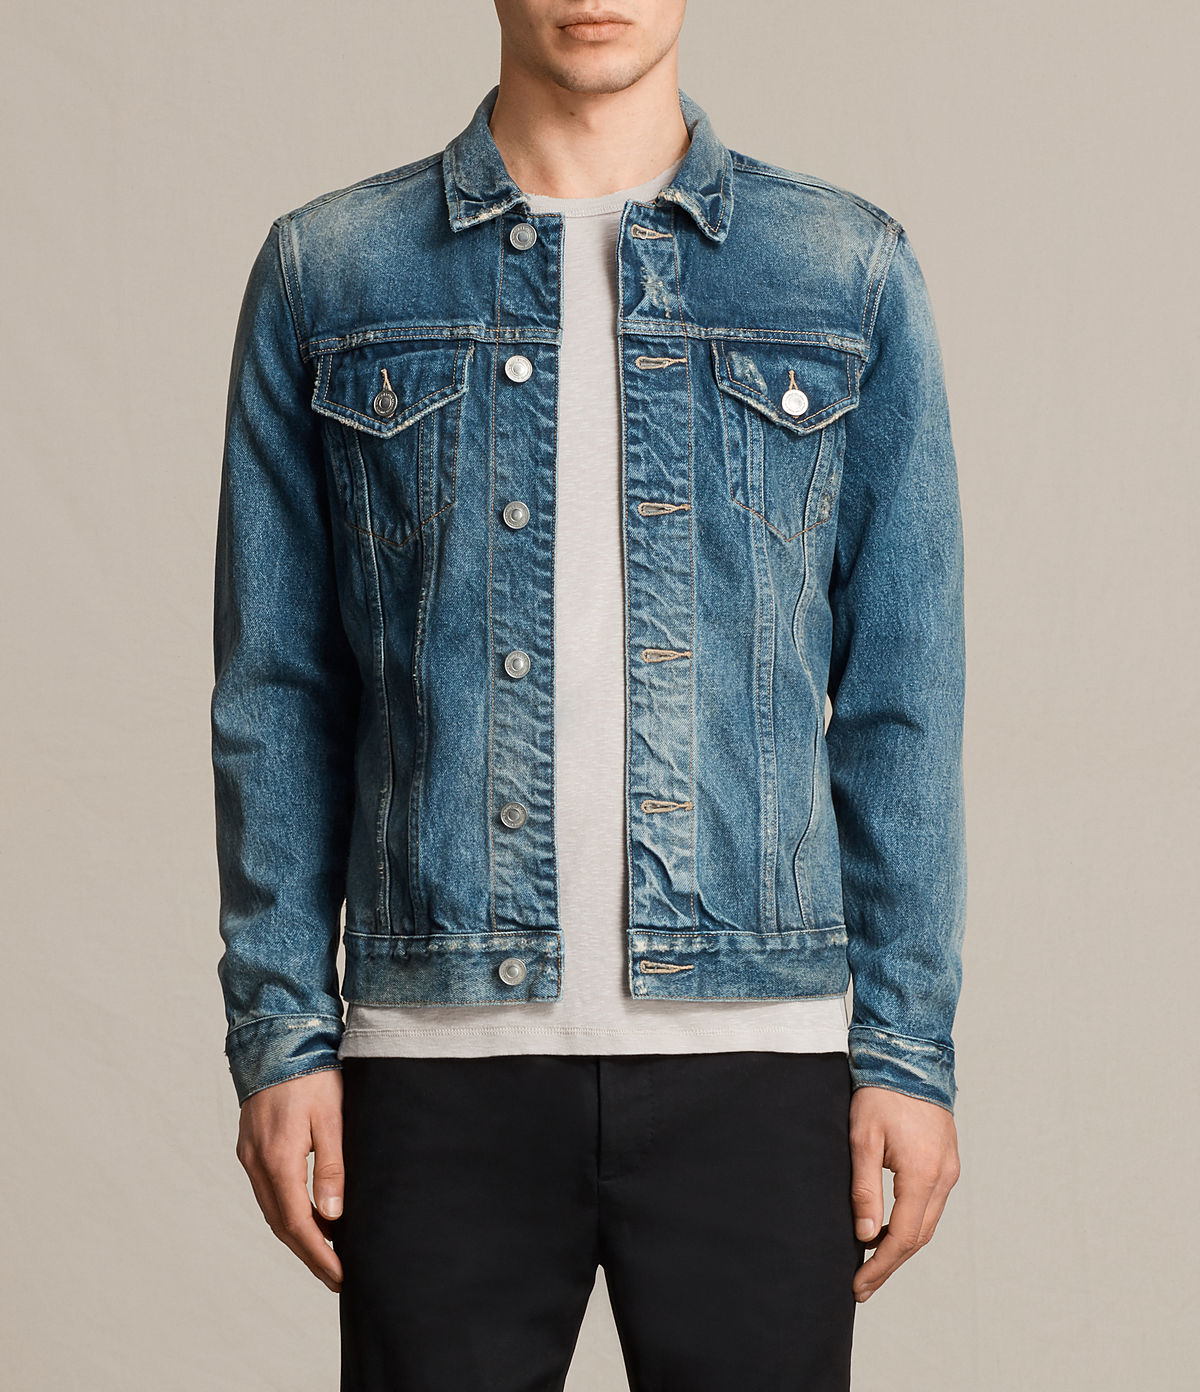 ALLSAINTS UK: Men's jackets, shop now.